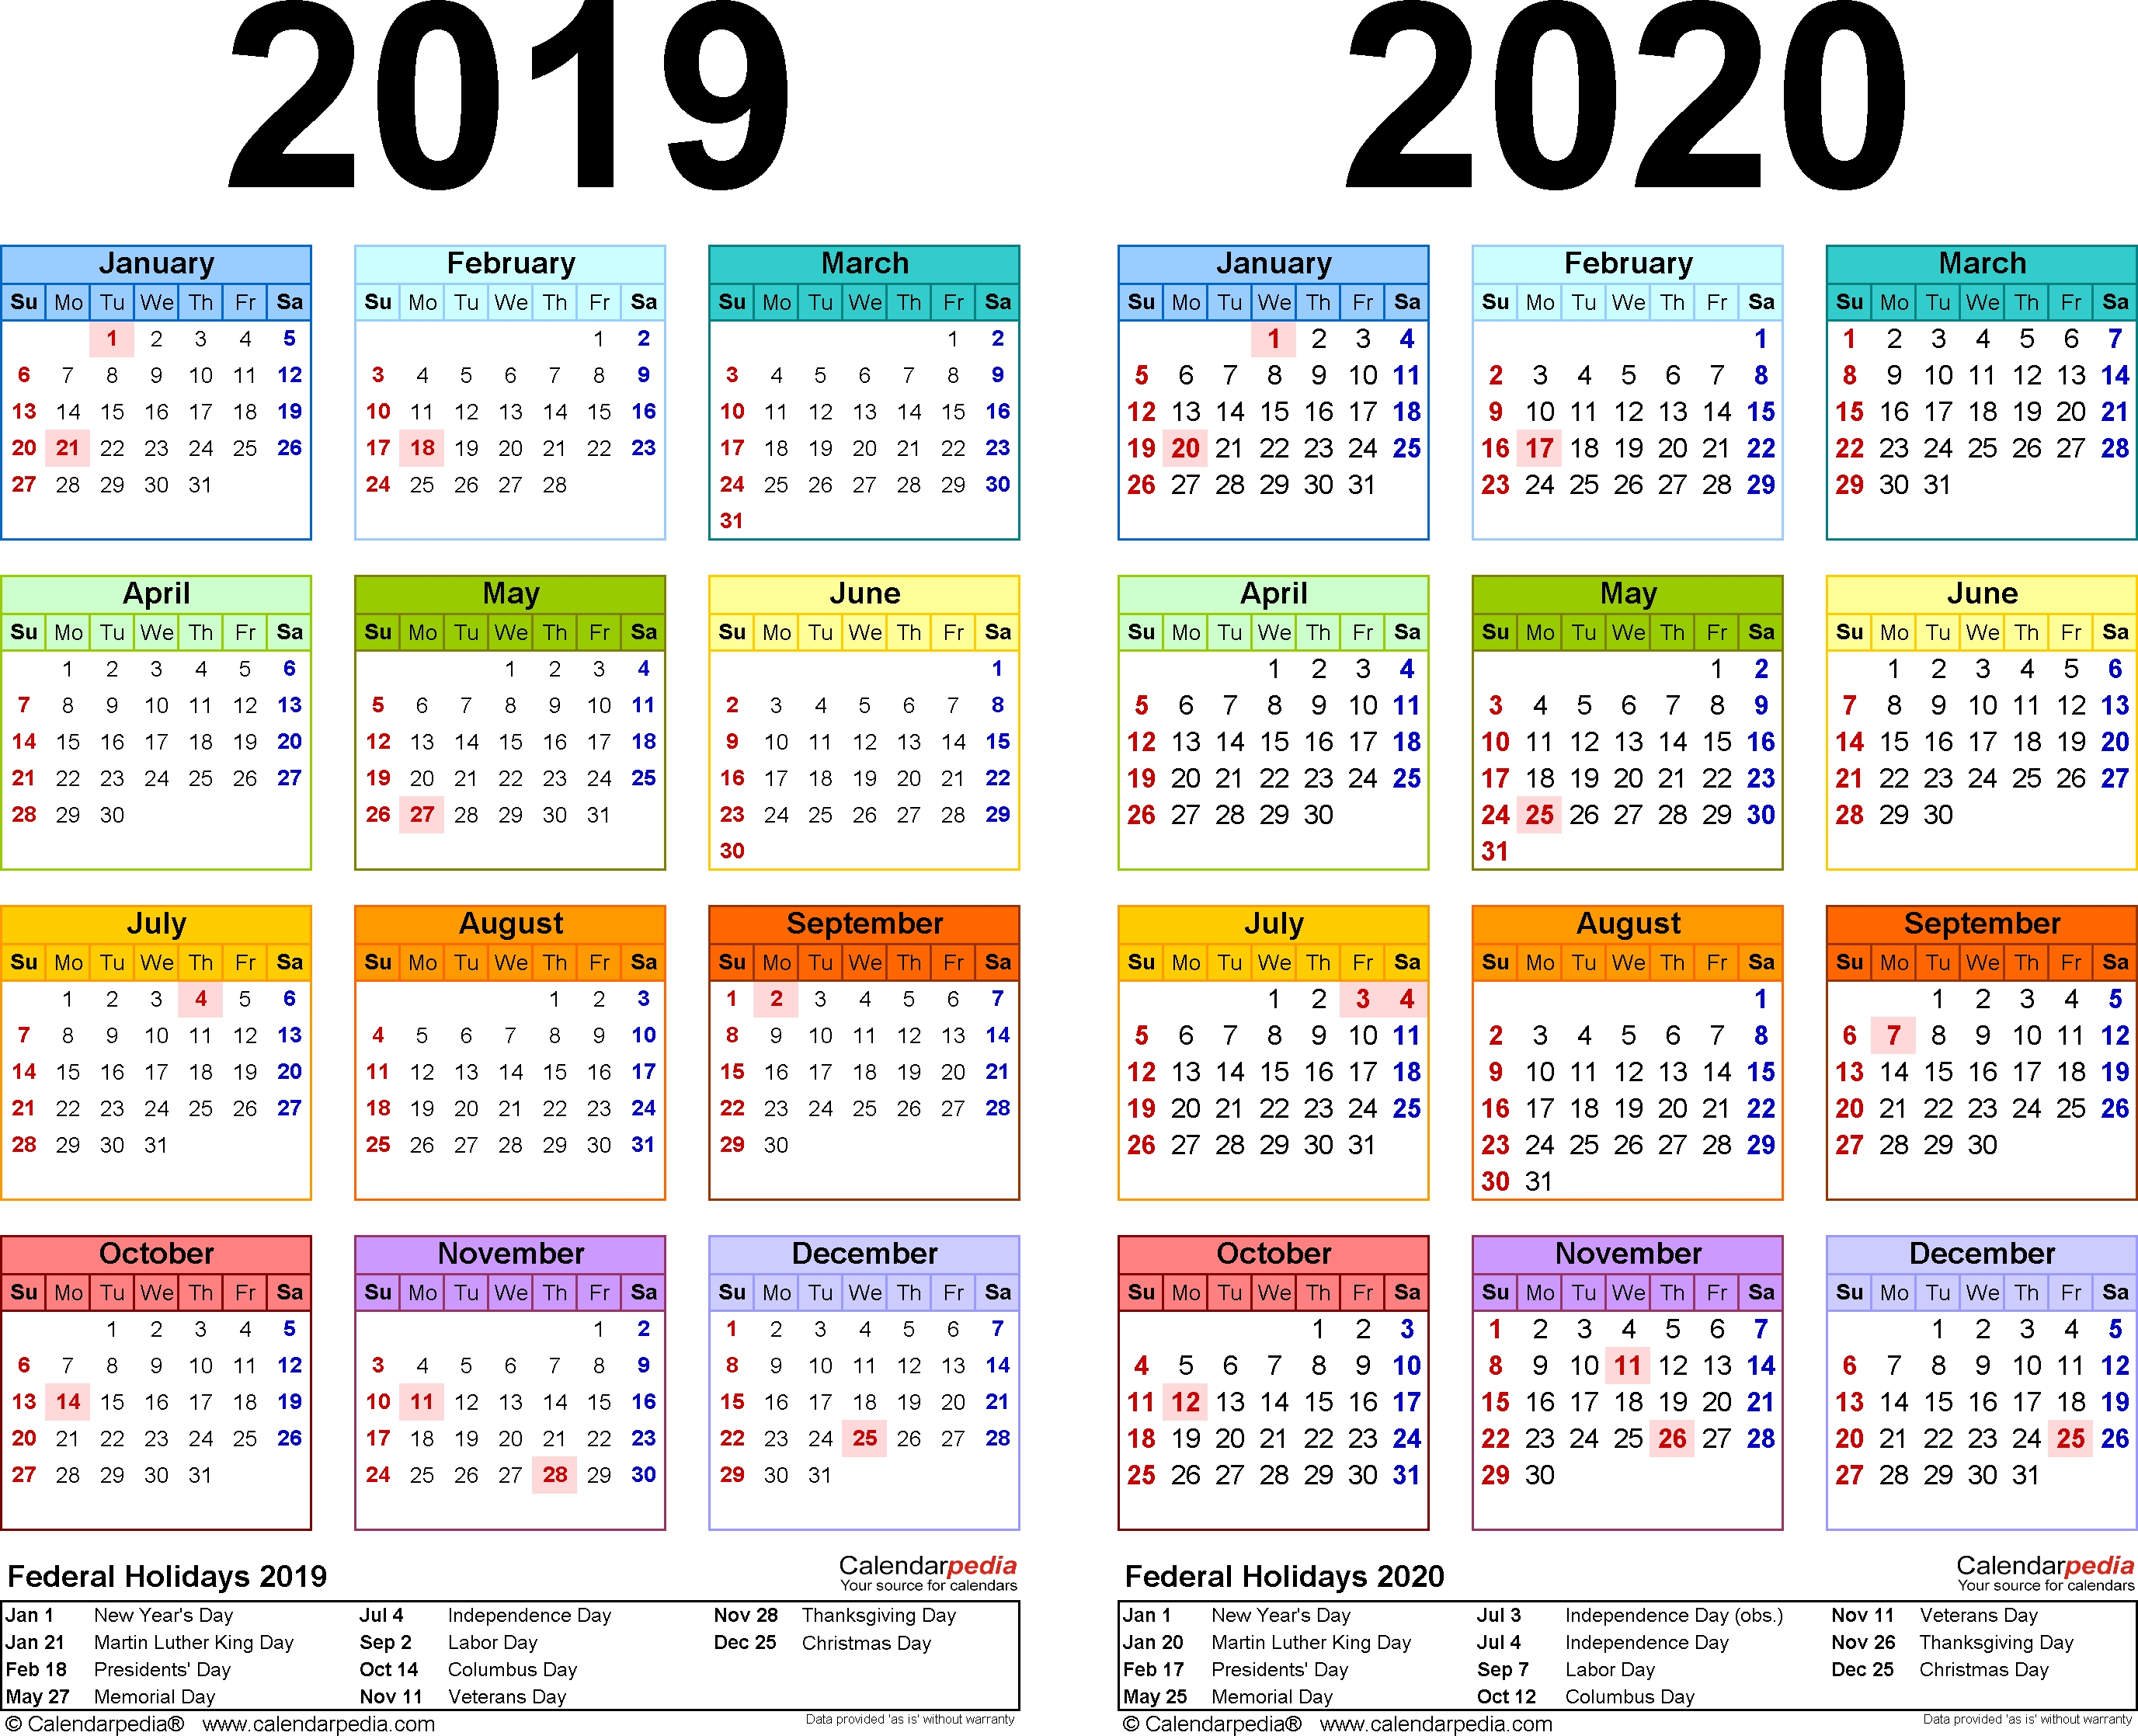 2019-2020 Calendar - Free Printable Two-Year Word Calendars pertaining to Calendar 2019 2020 With Boxes